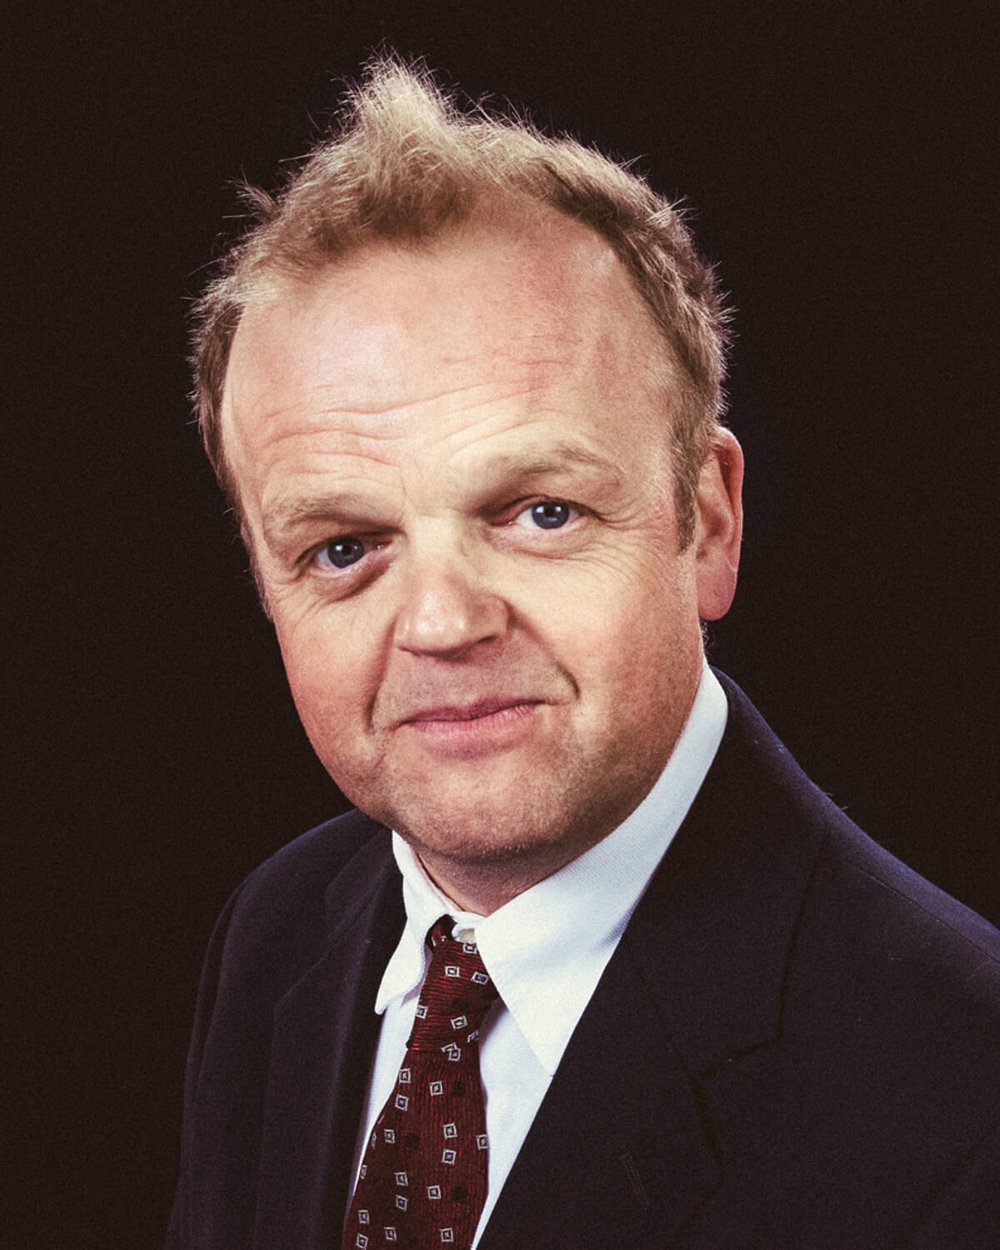 portrait photographer Tim Cole shoots Toby Jones